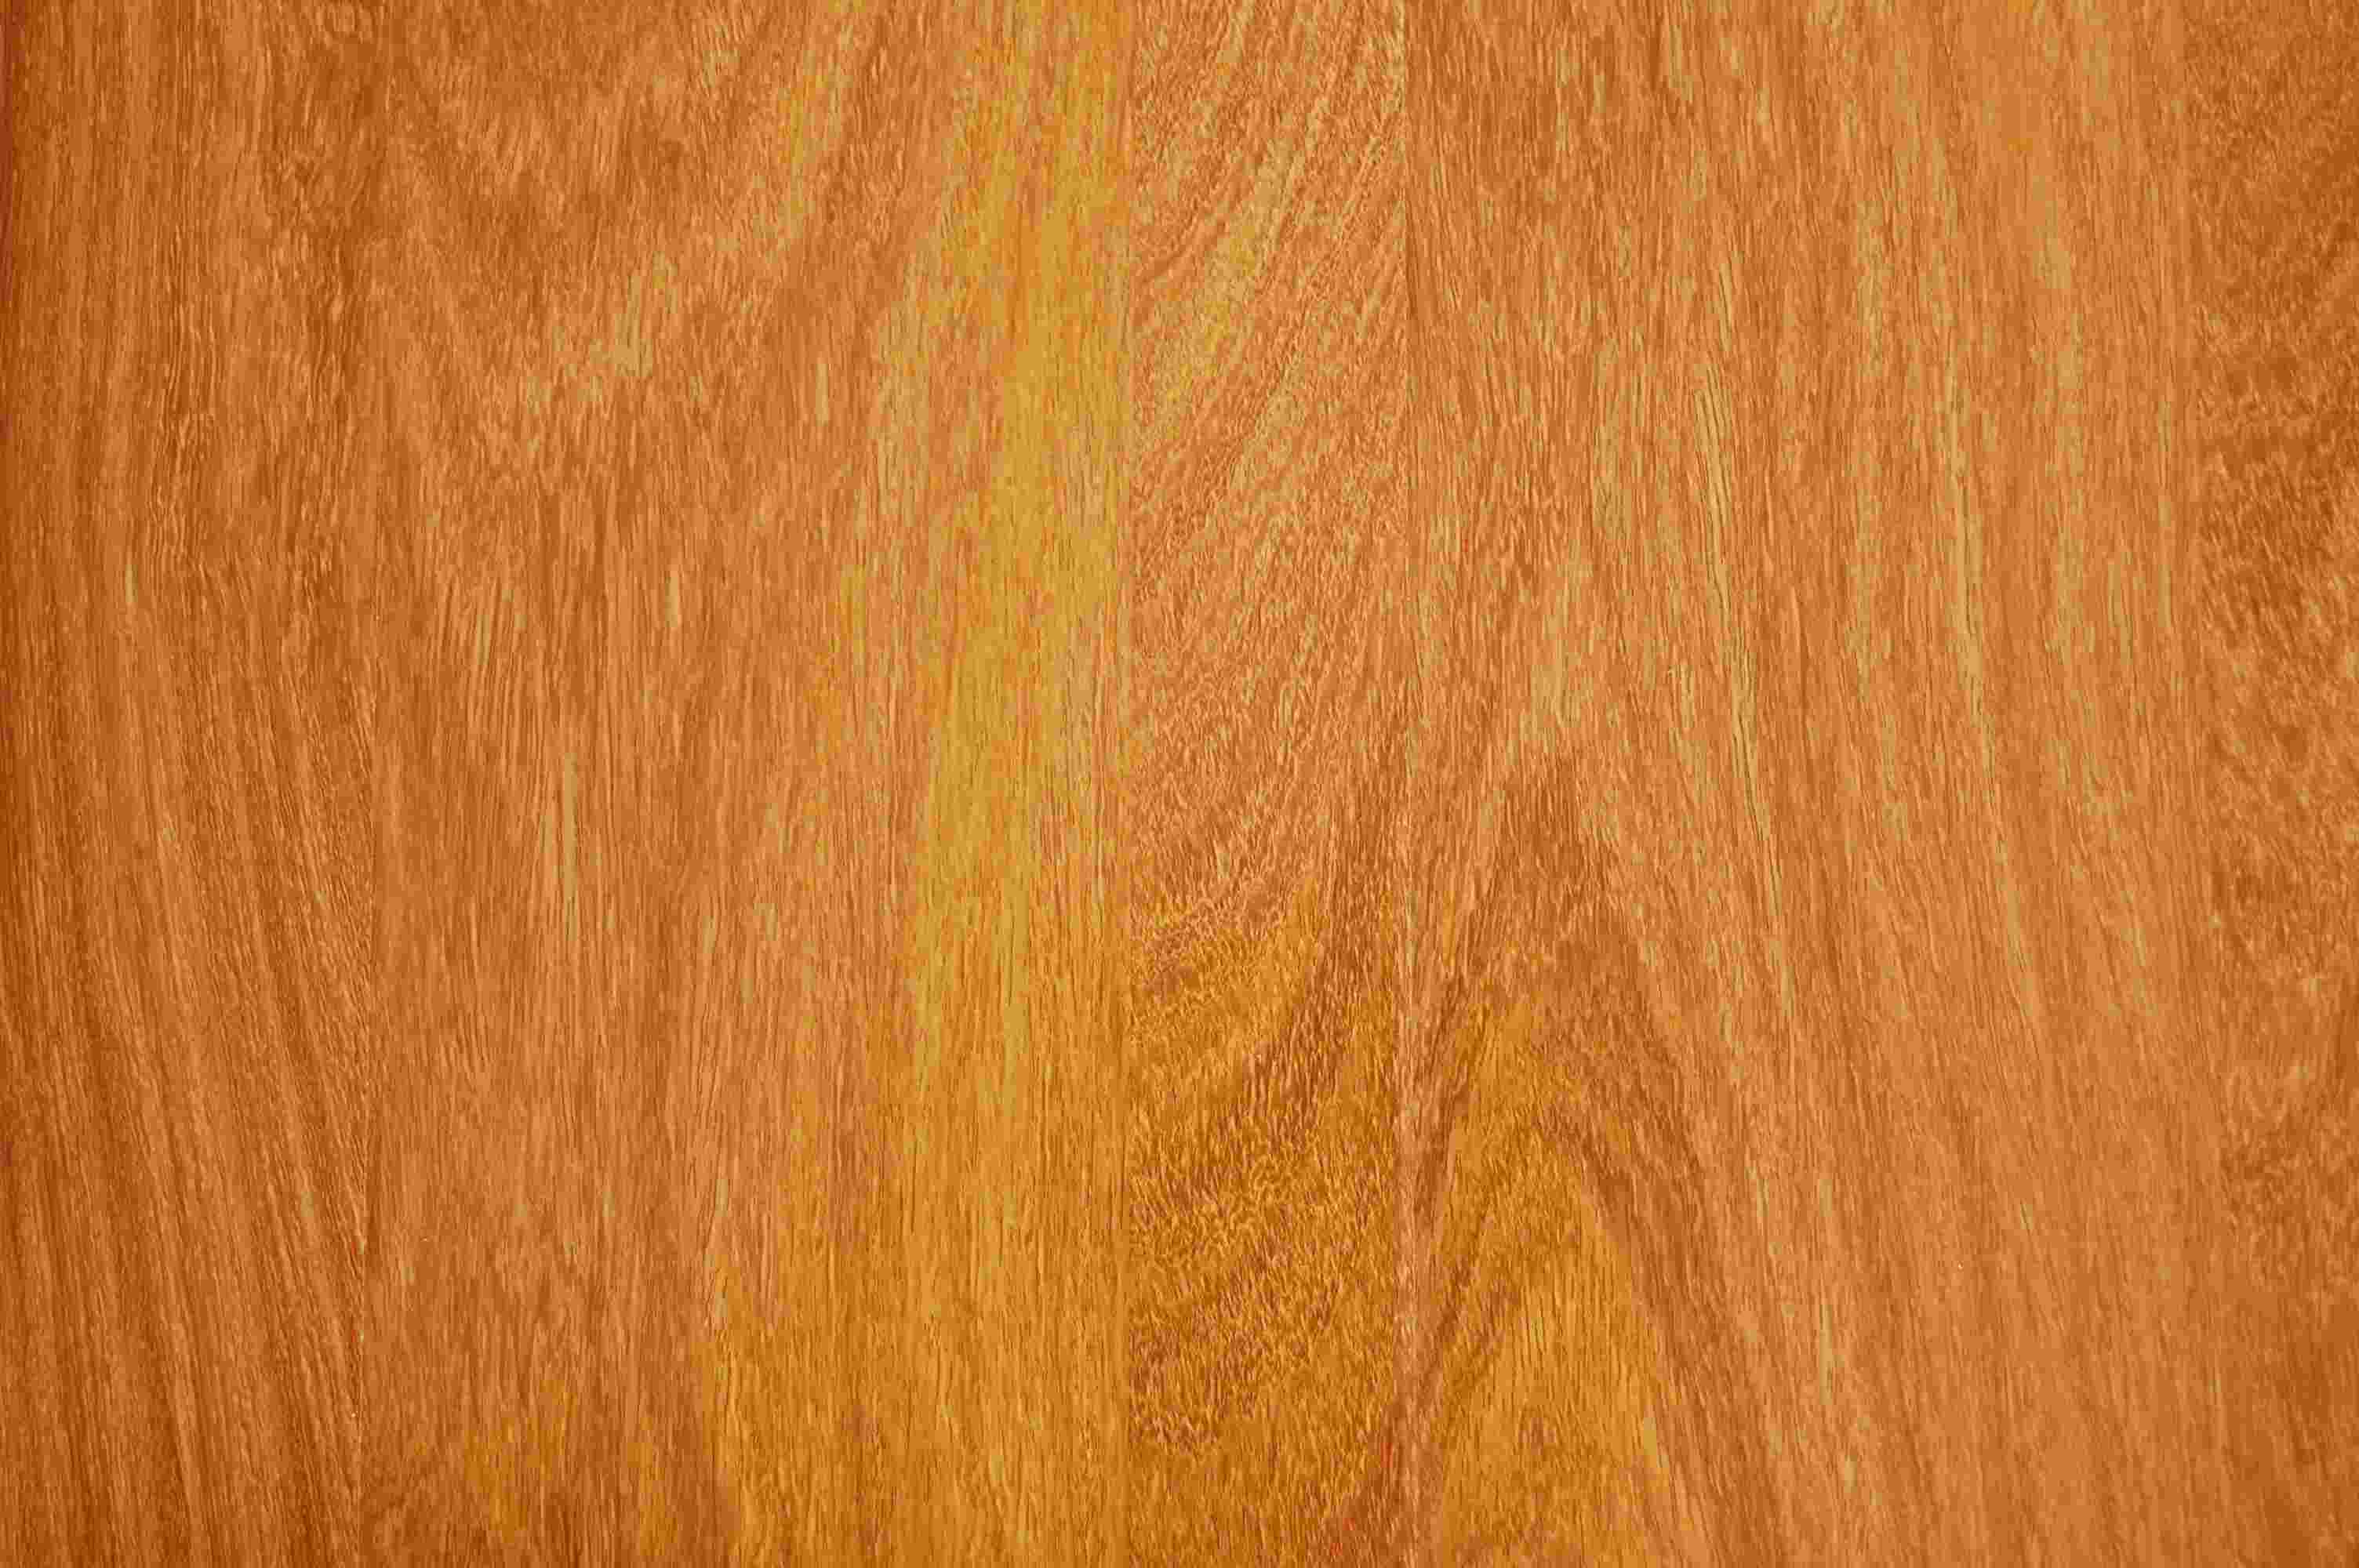 Engineered Hardwood Vs Laminate Wood Flooring Wood Floors